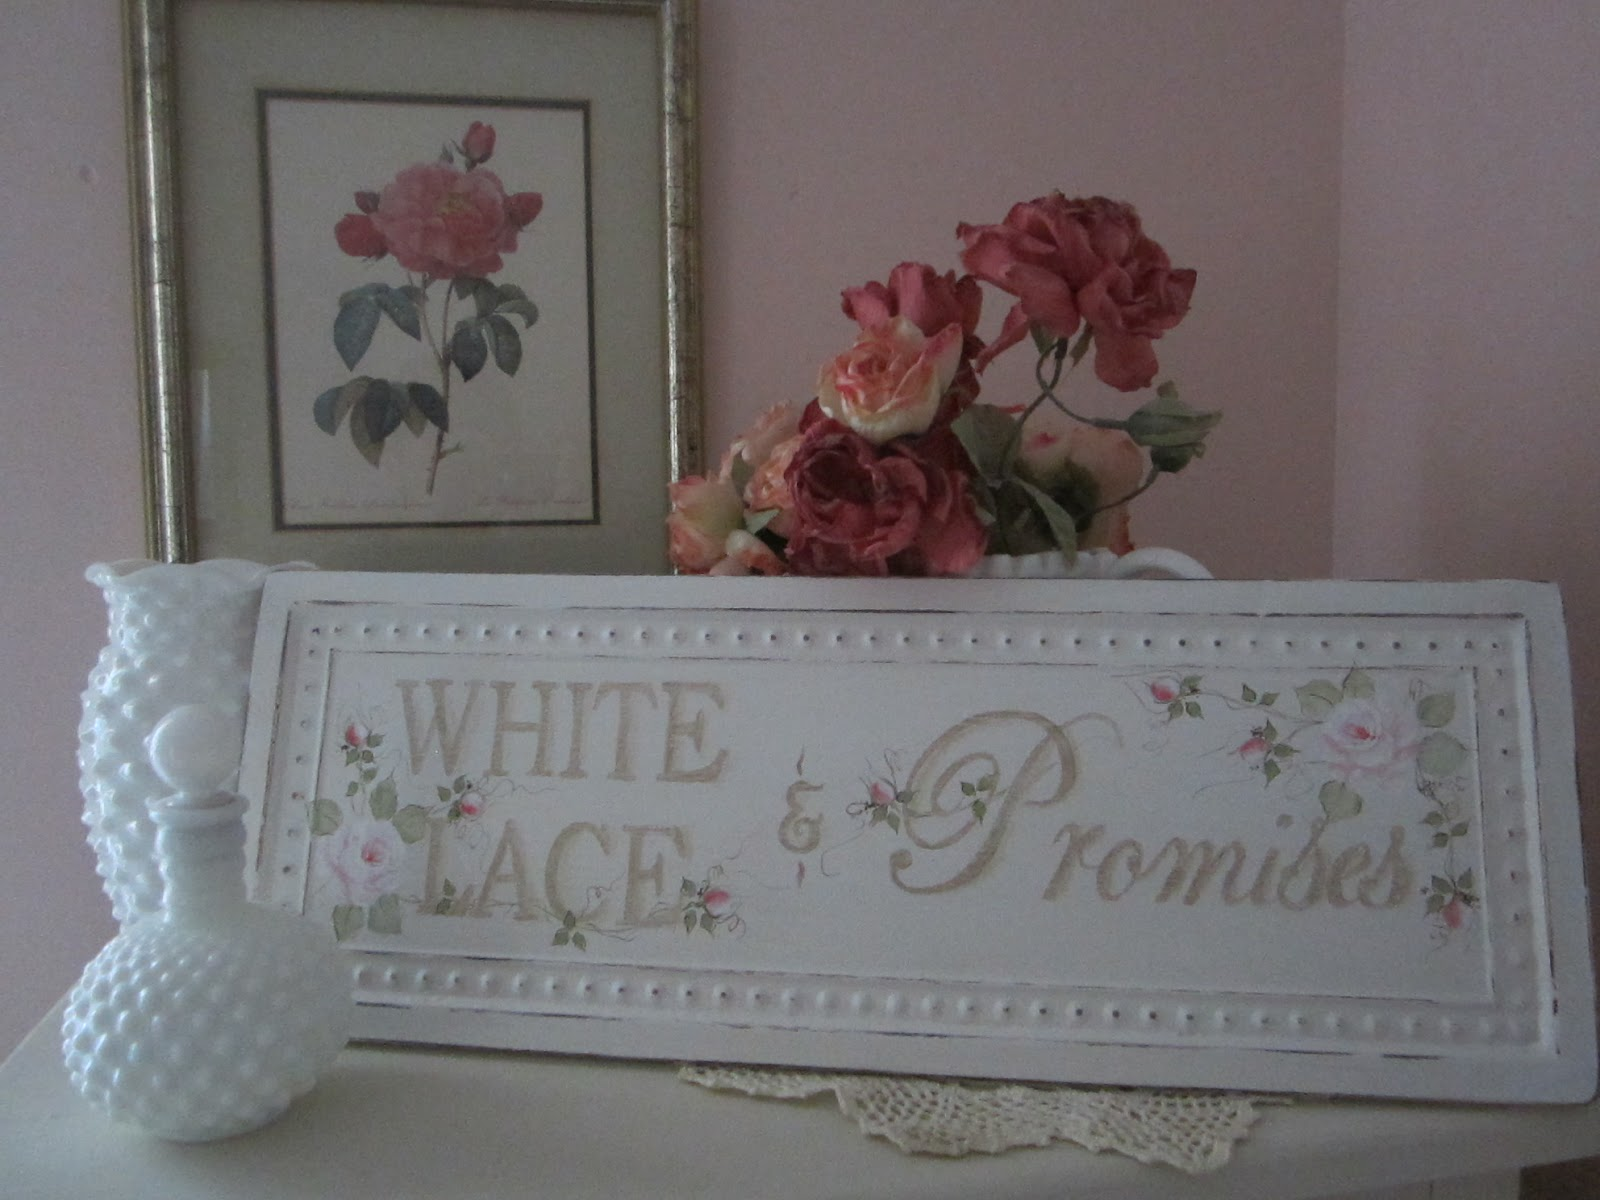 Vintage Girl 901: White Lace and Promises